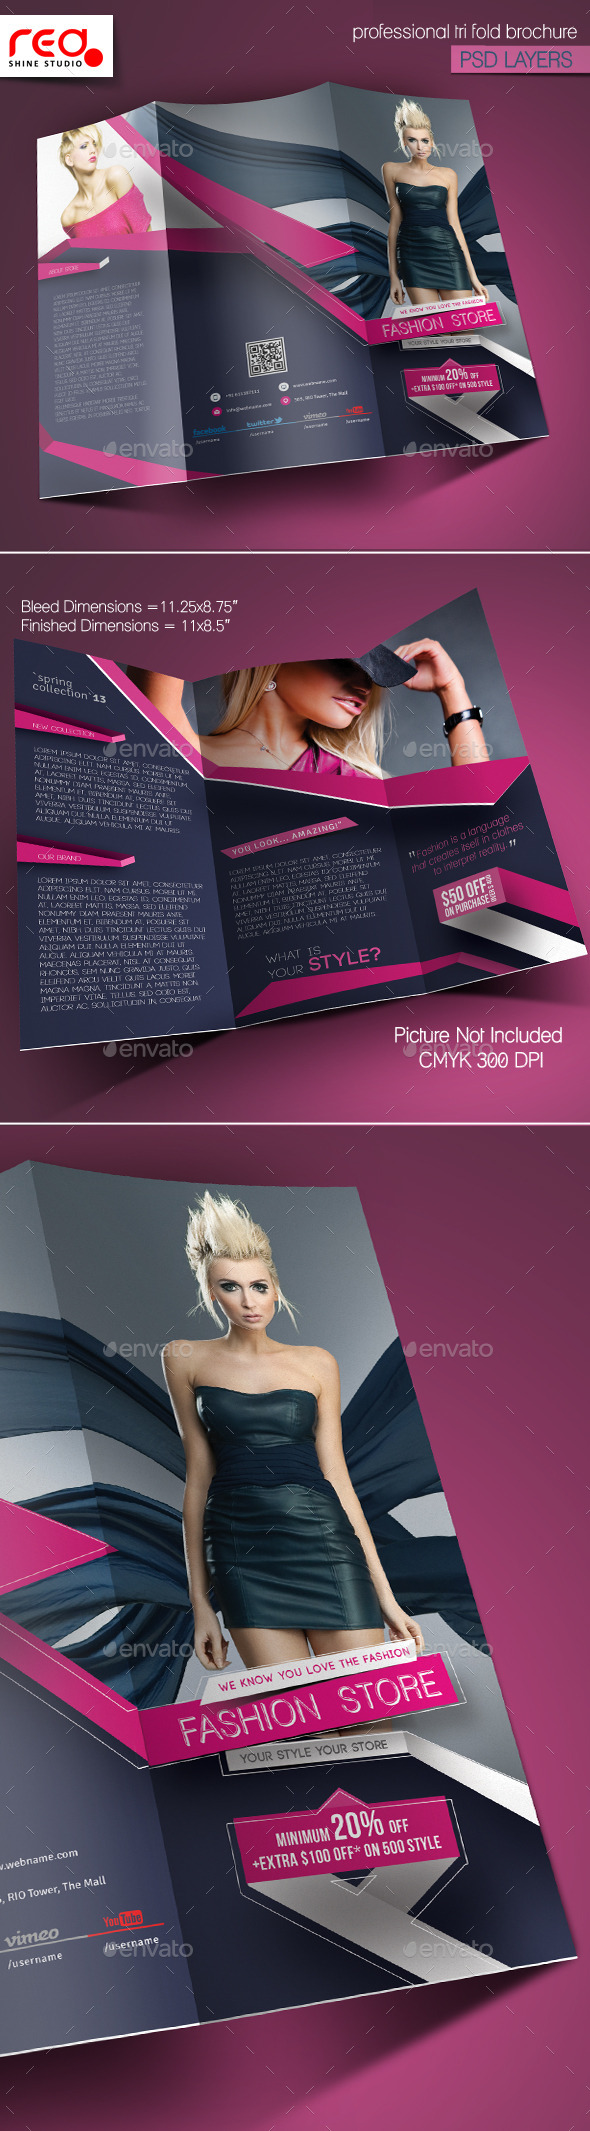 Fashion Store Trifold Brochure Template - Catalogs Brochures